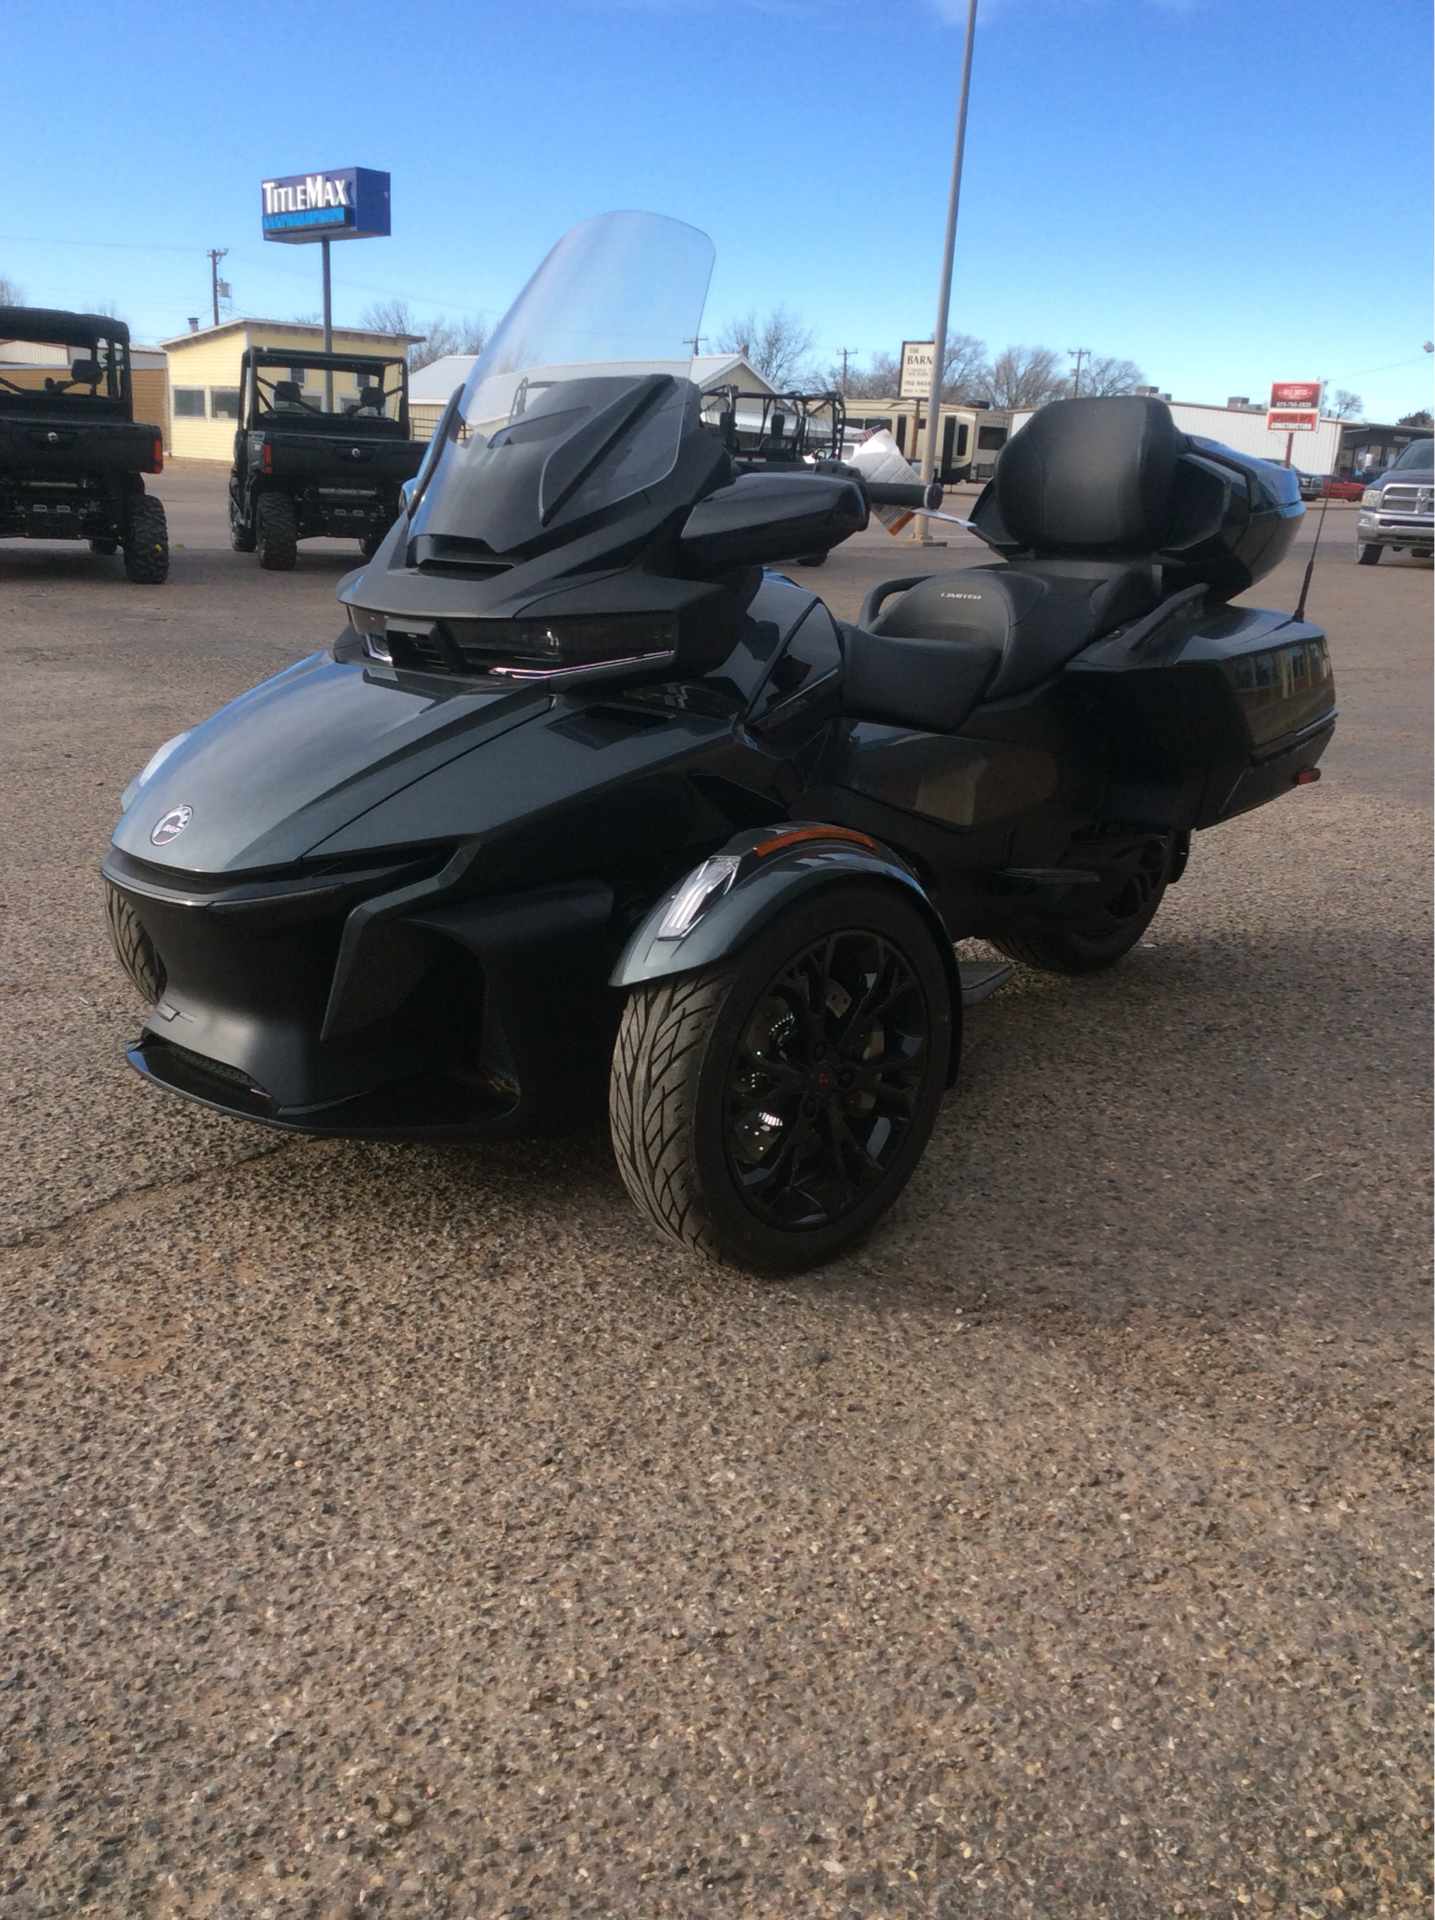 2021 Can-Am Spyder RT Limited in Clovis, New Mexico - Photo 4